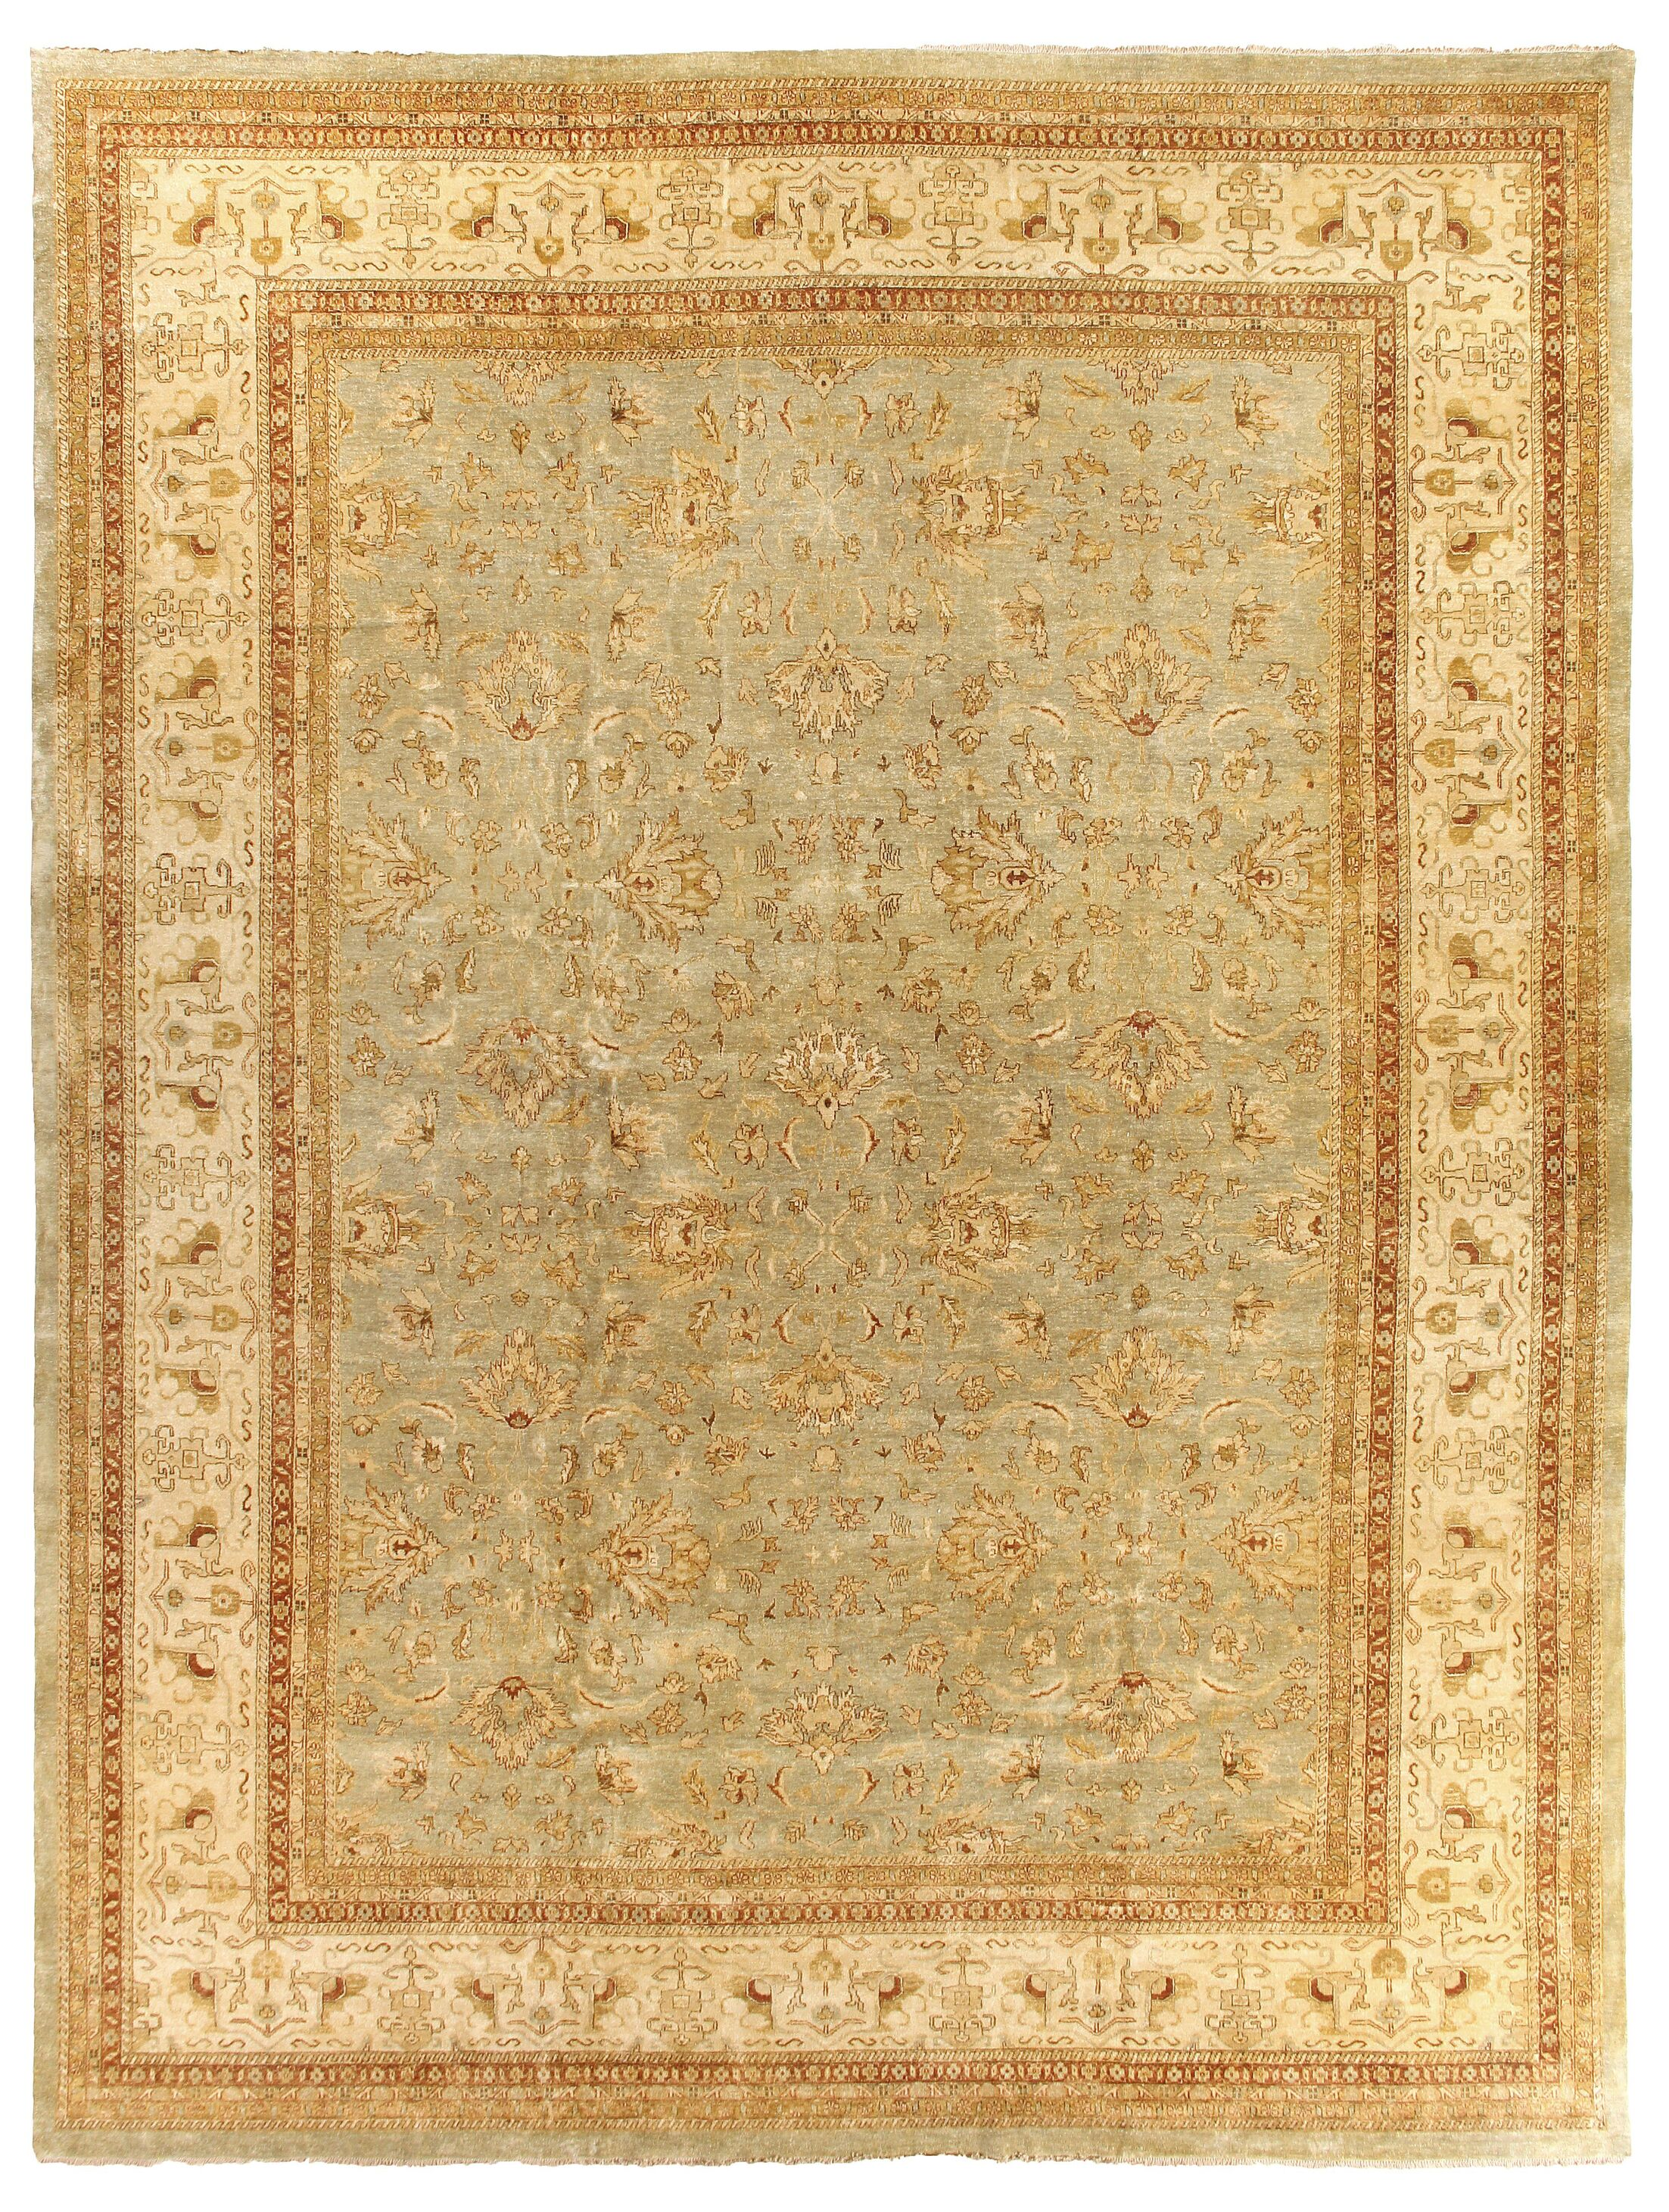 Ziegler Hand Knotted Wool Blue/Beige Area Rug Rug Size: Rectangle 15' x 20'